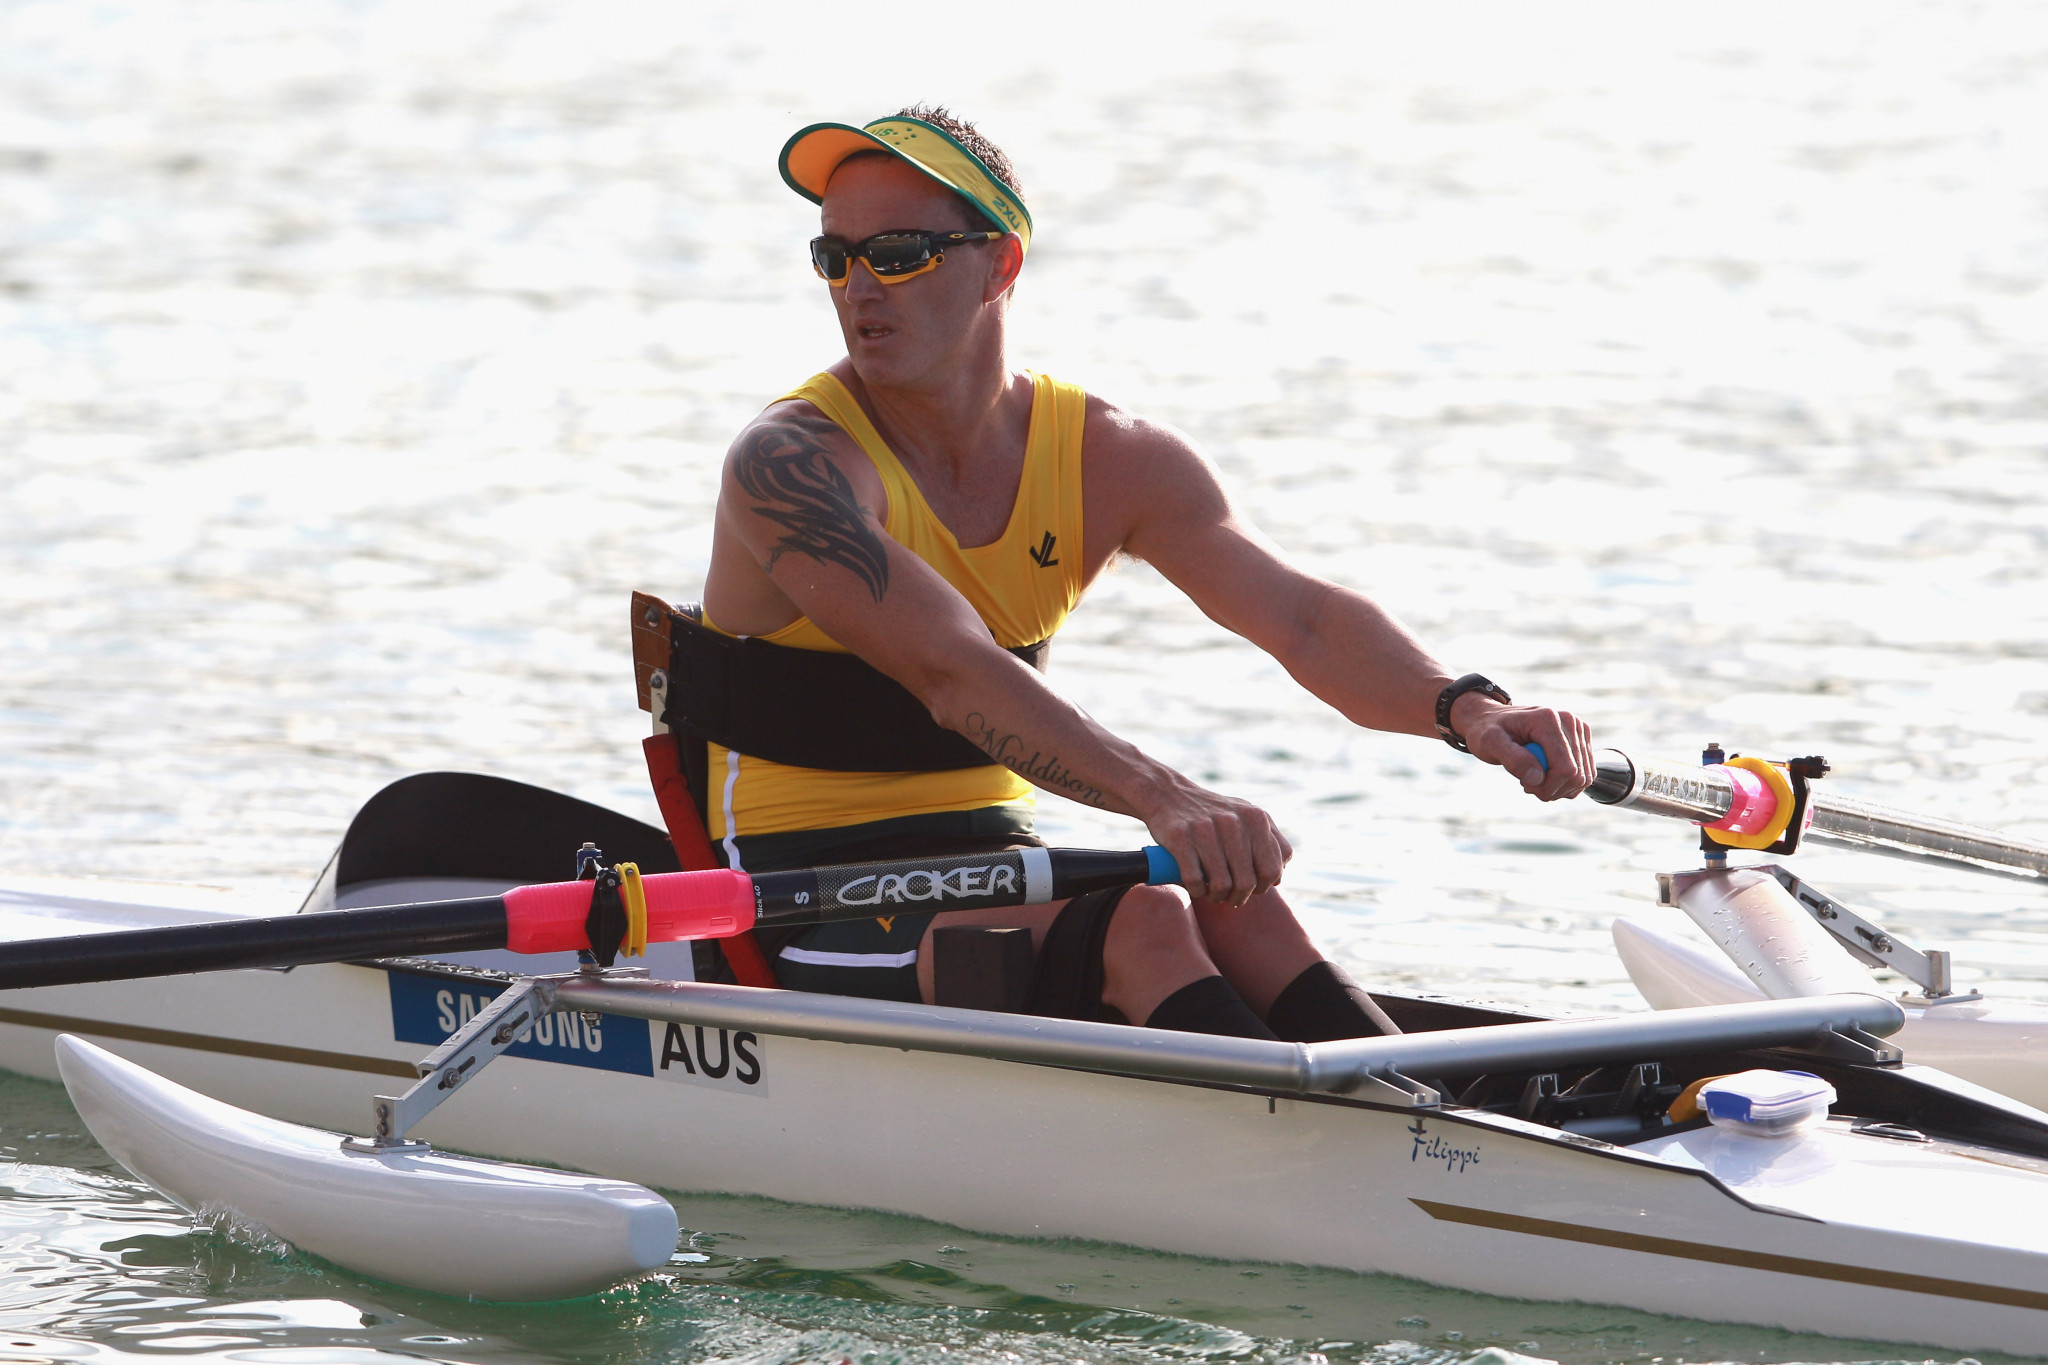 Australia's Erik Horrie made a strong start in his bid for a fourth para-rowing world title on the first day's racing over a 2000m course in Florida ©Getty Images